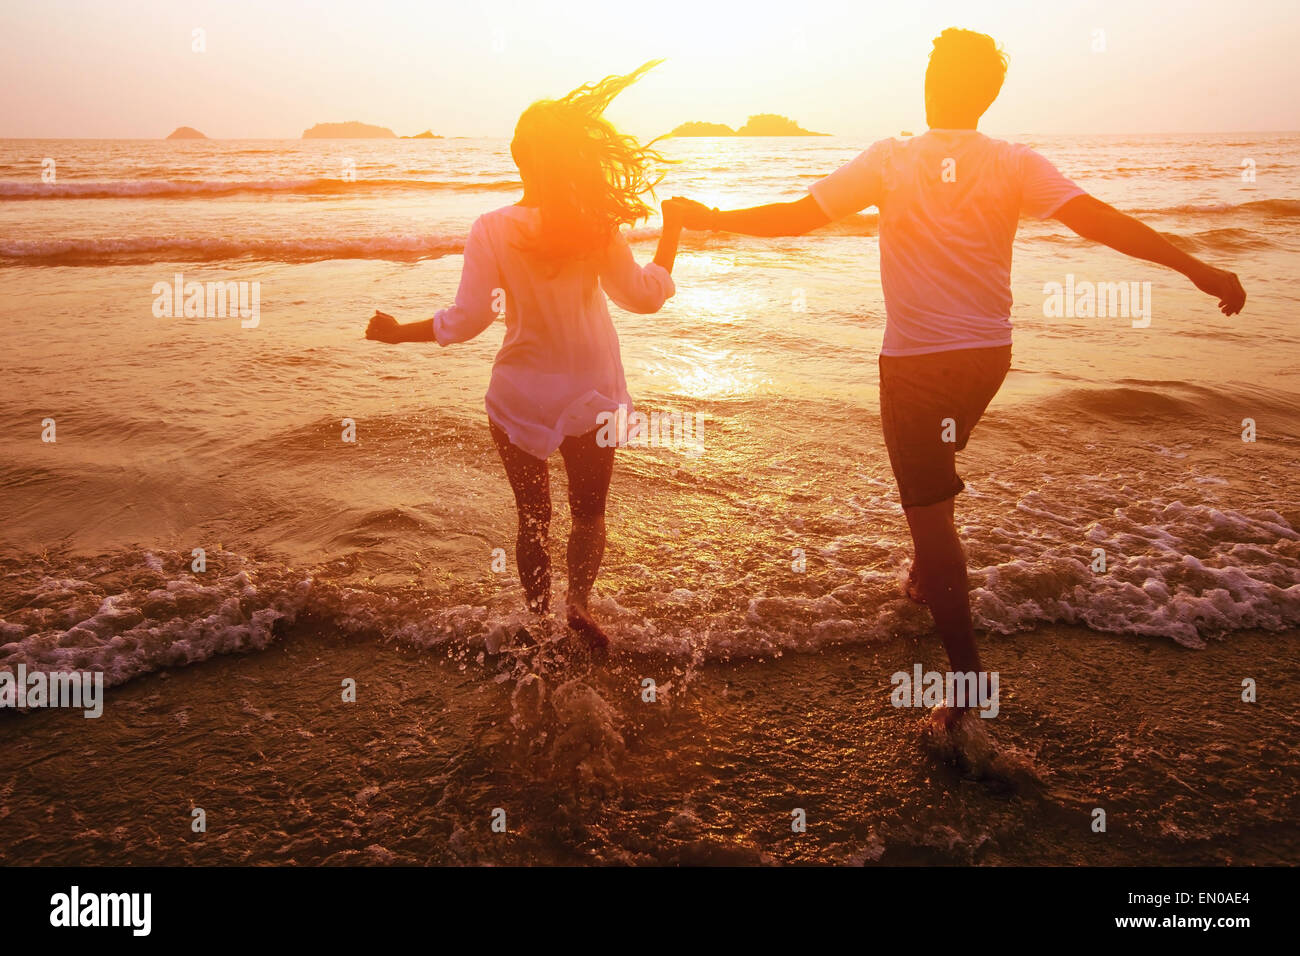 silhouette of couple on the beach, dream vacations - Stock Image